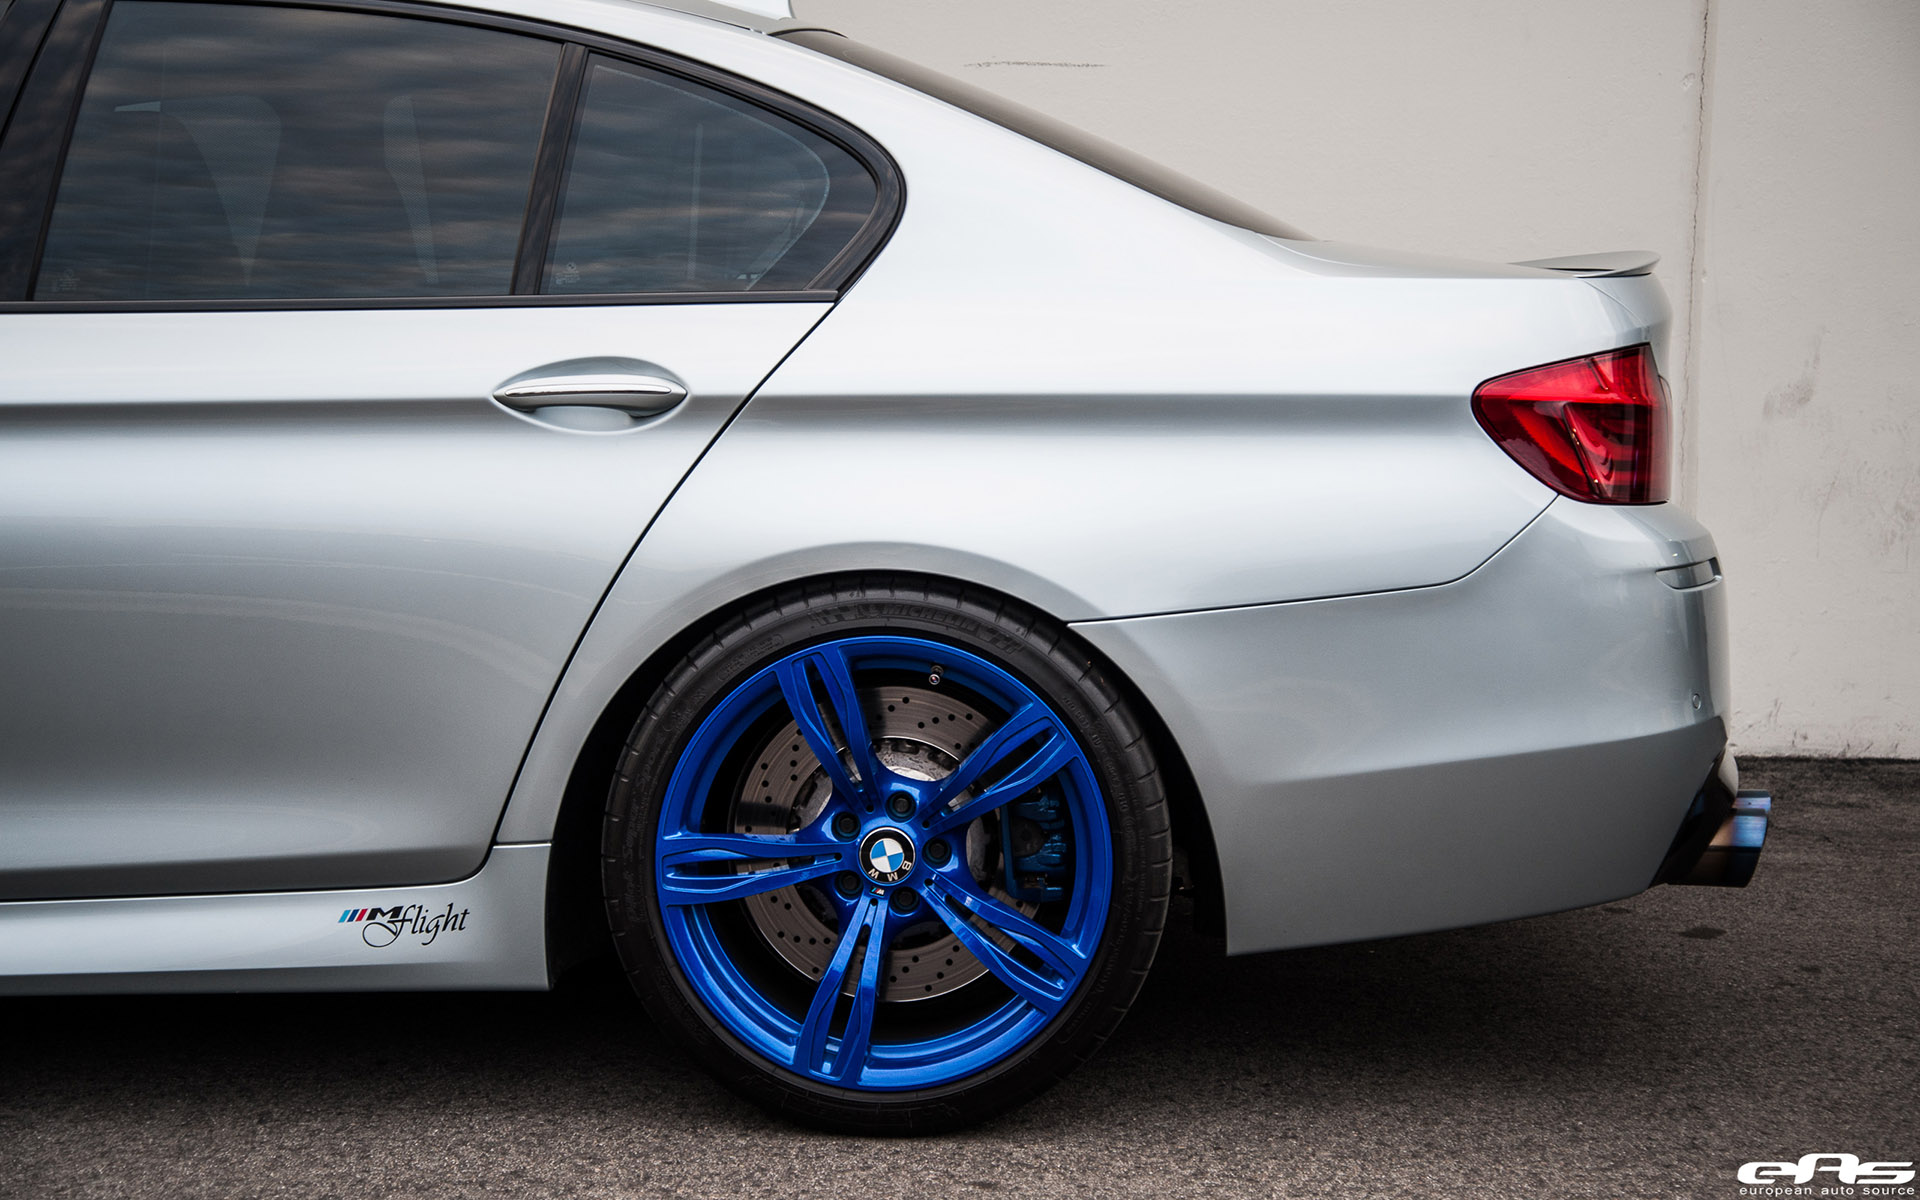 Silverstone BMW M5 With Blue Wheels & A Custom Exhaust Installed